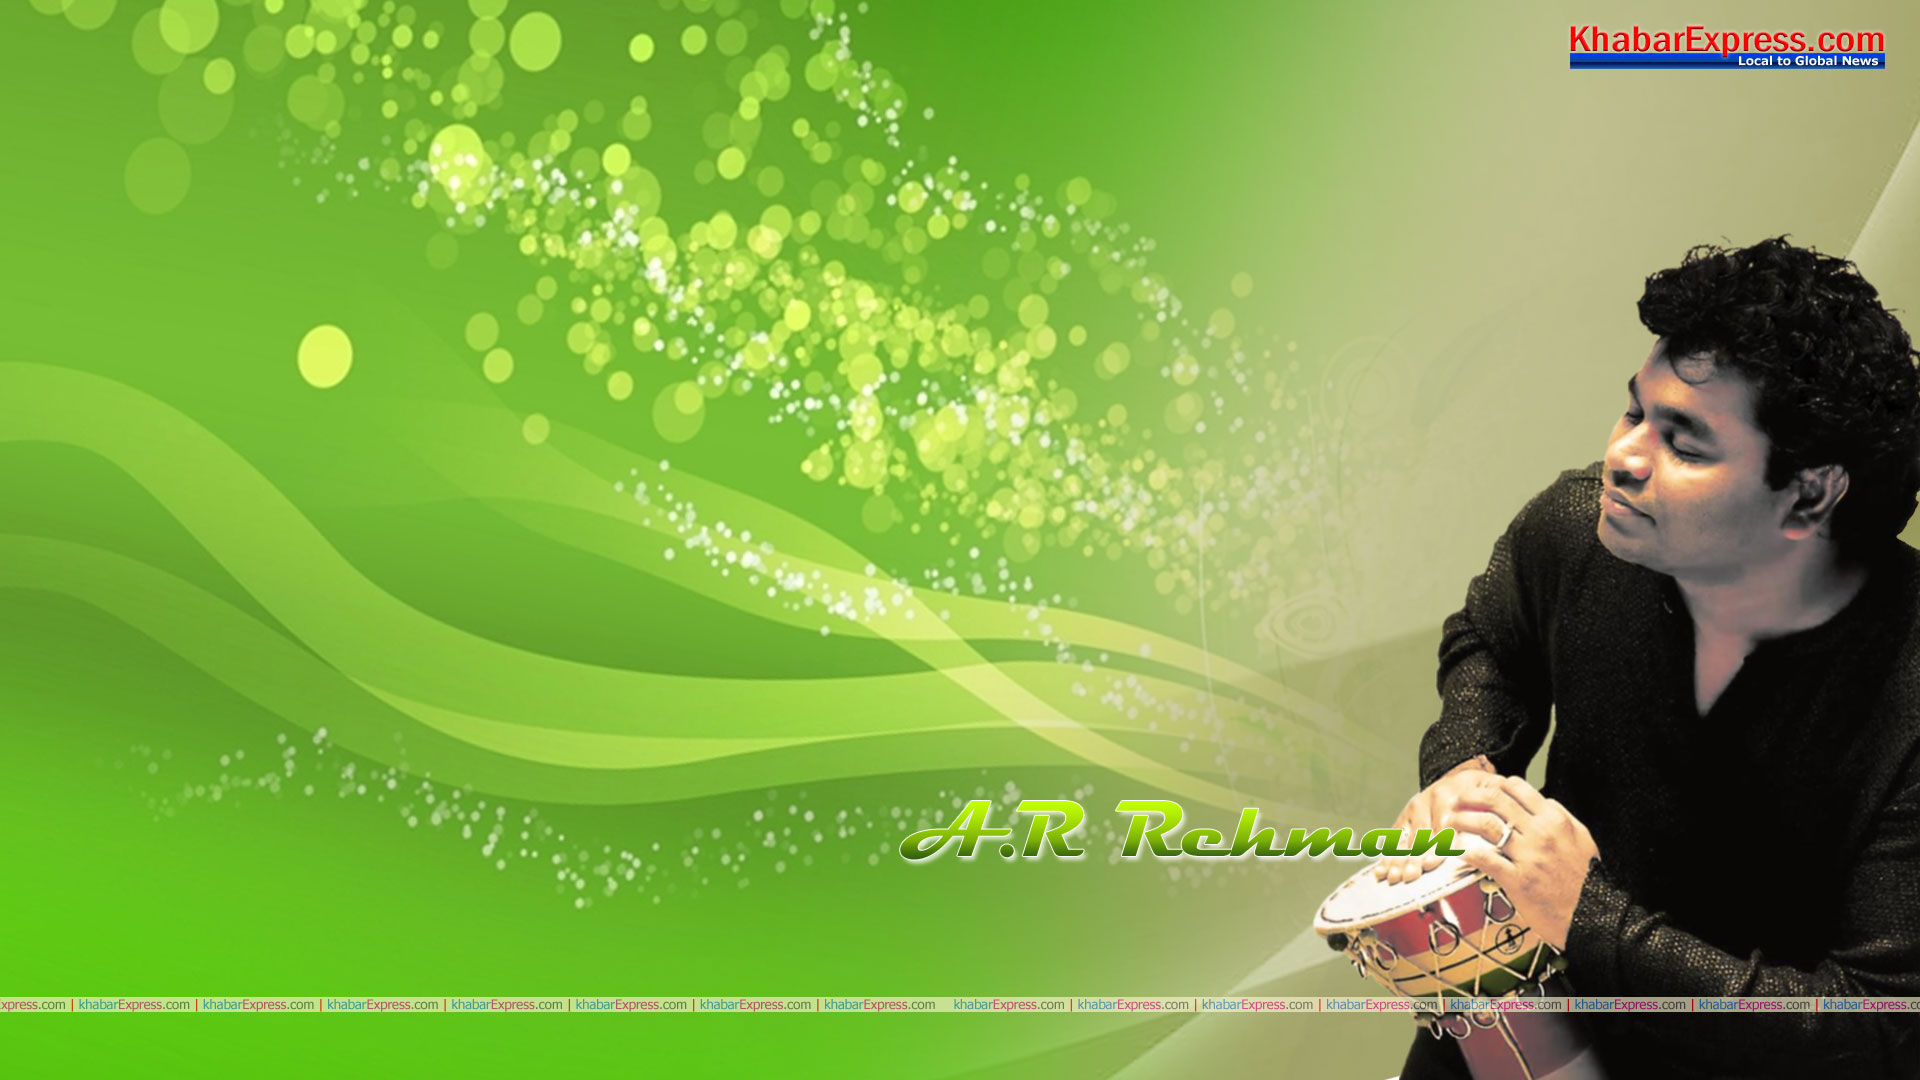 Wallpaper of Music Maestro A R Rehman